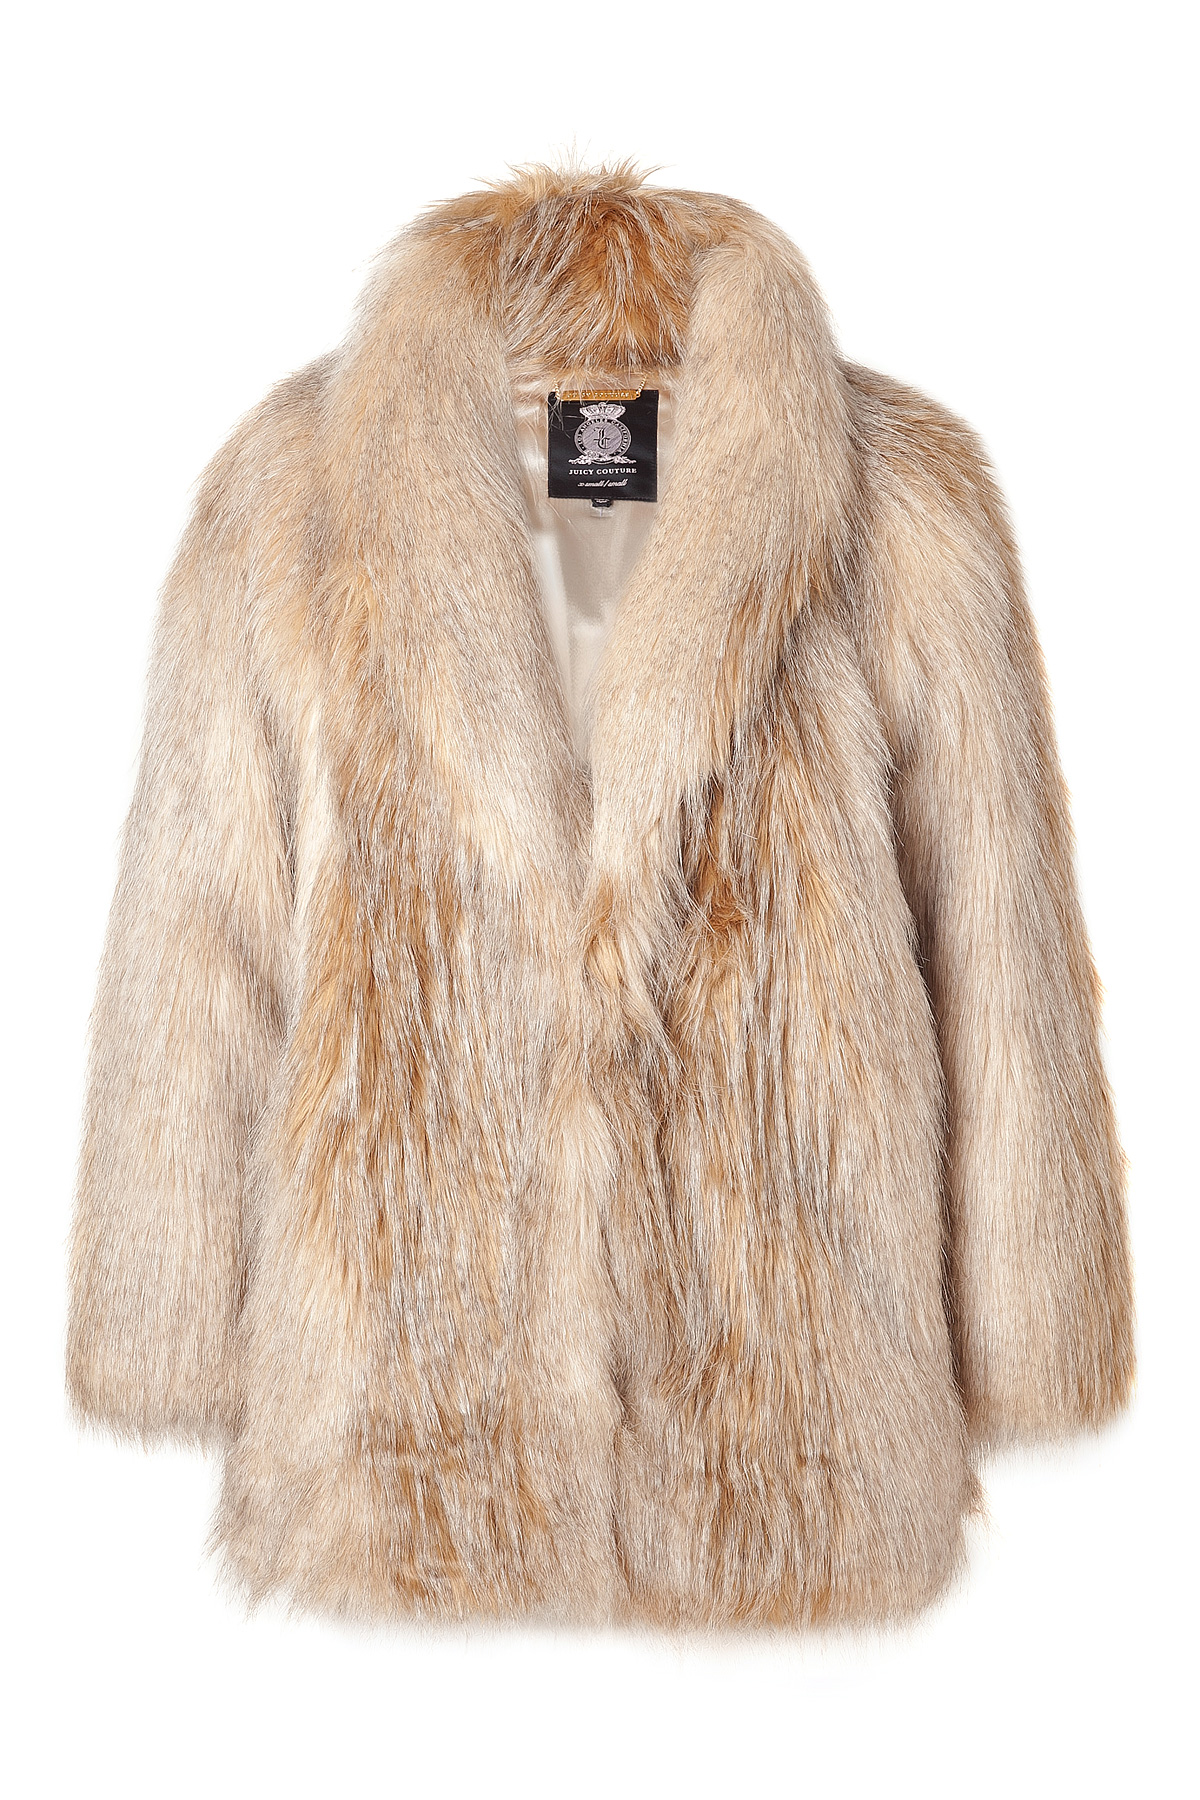 07f1ea29ee79 Juicy Couture Blonde Striped Faux Fur Jacket in Natural - Lyst